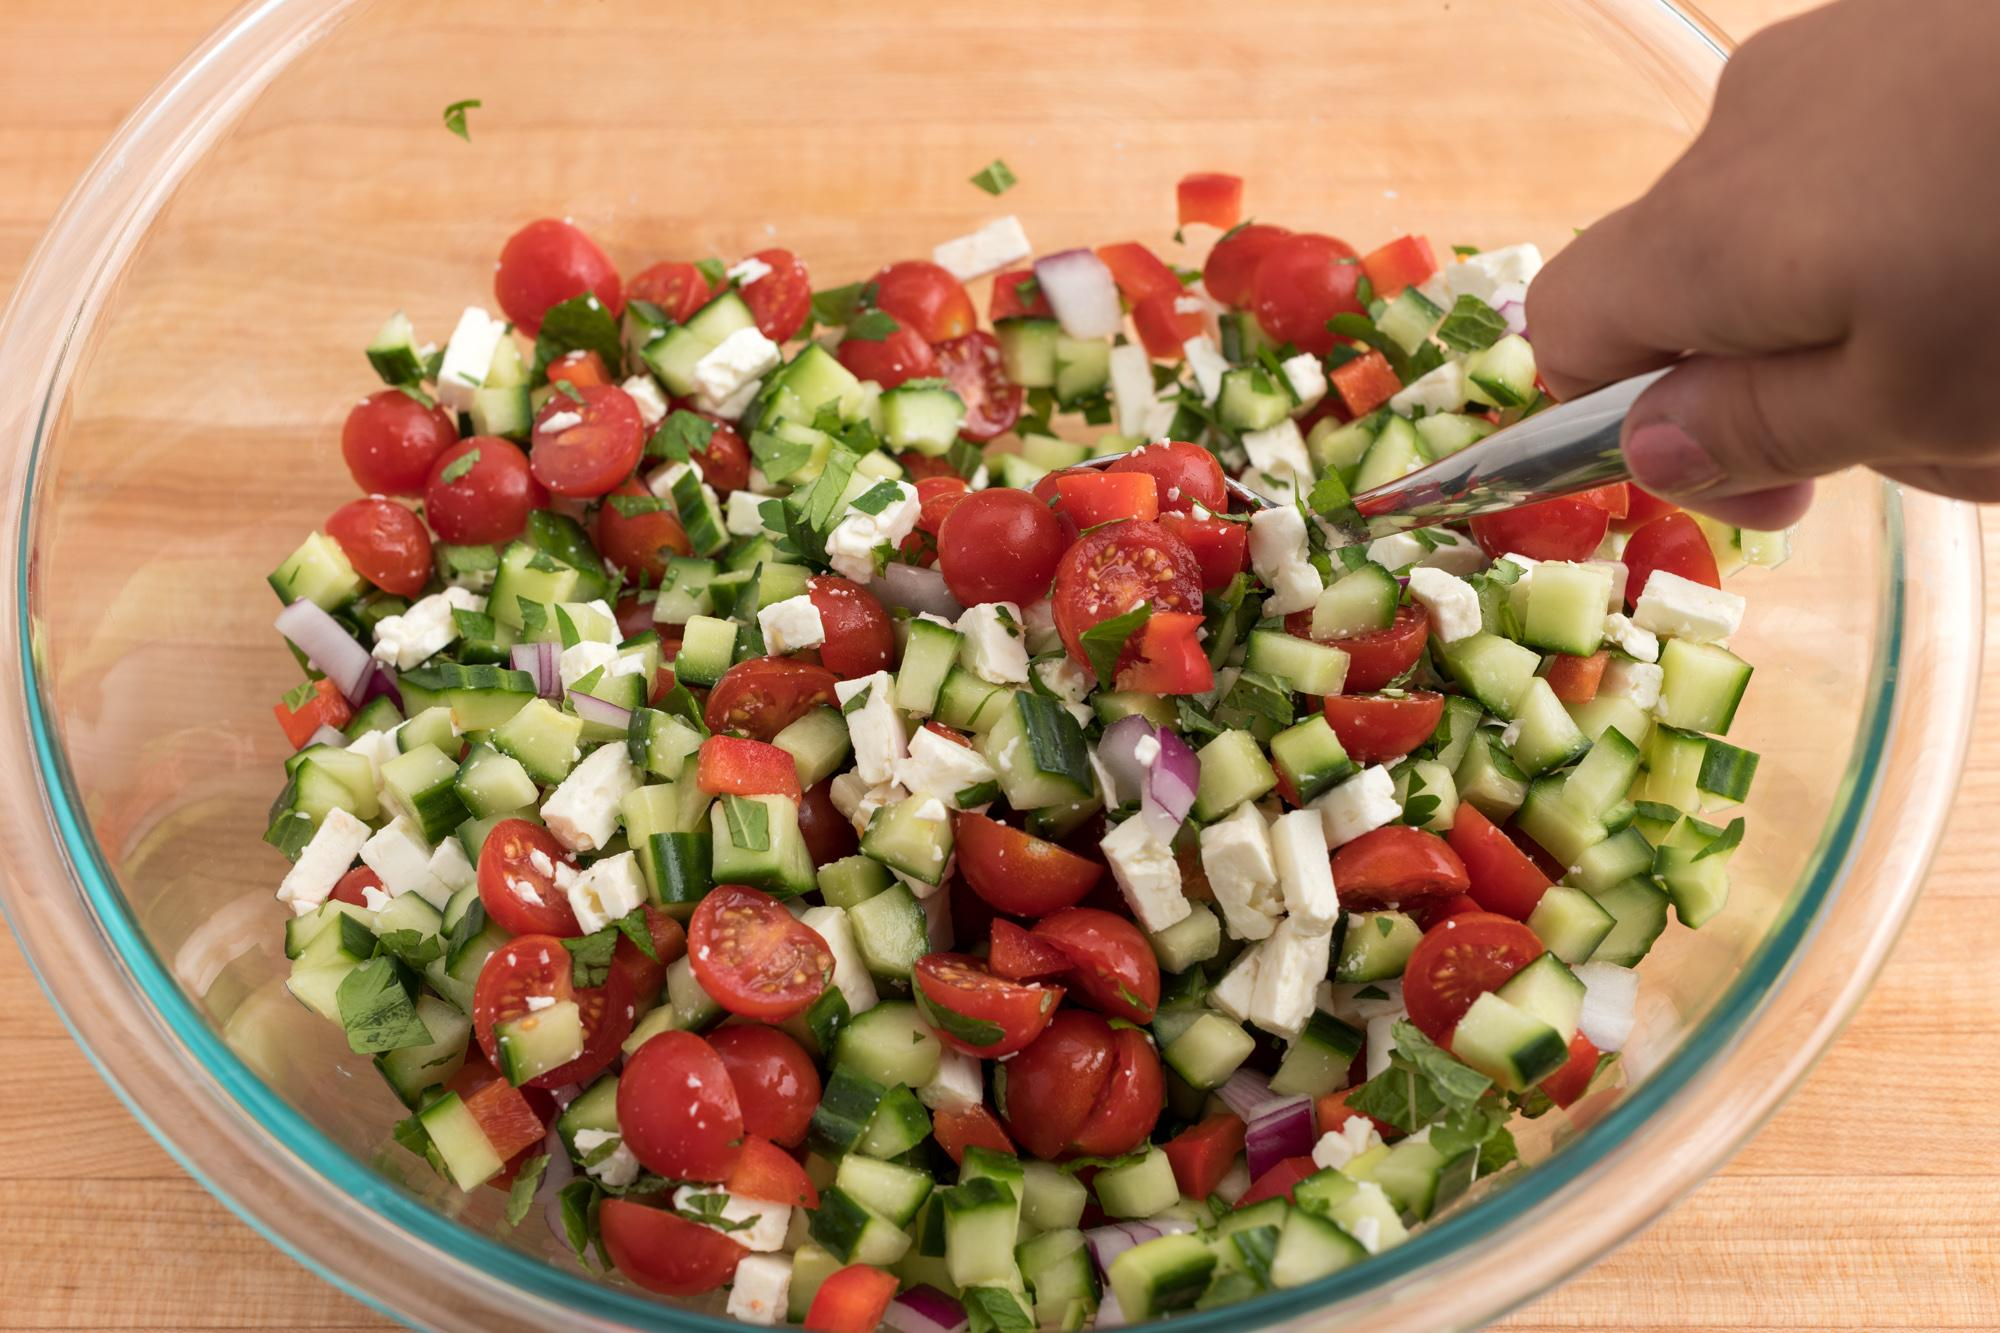 Mixing the salad.